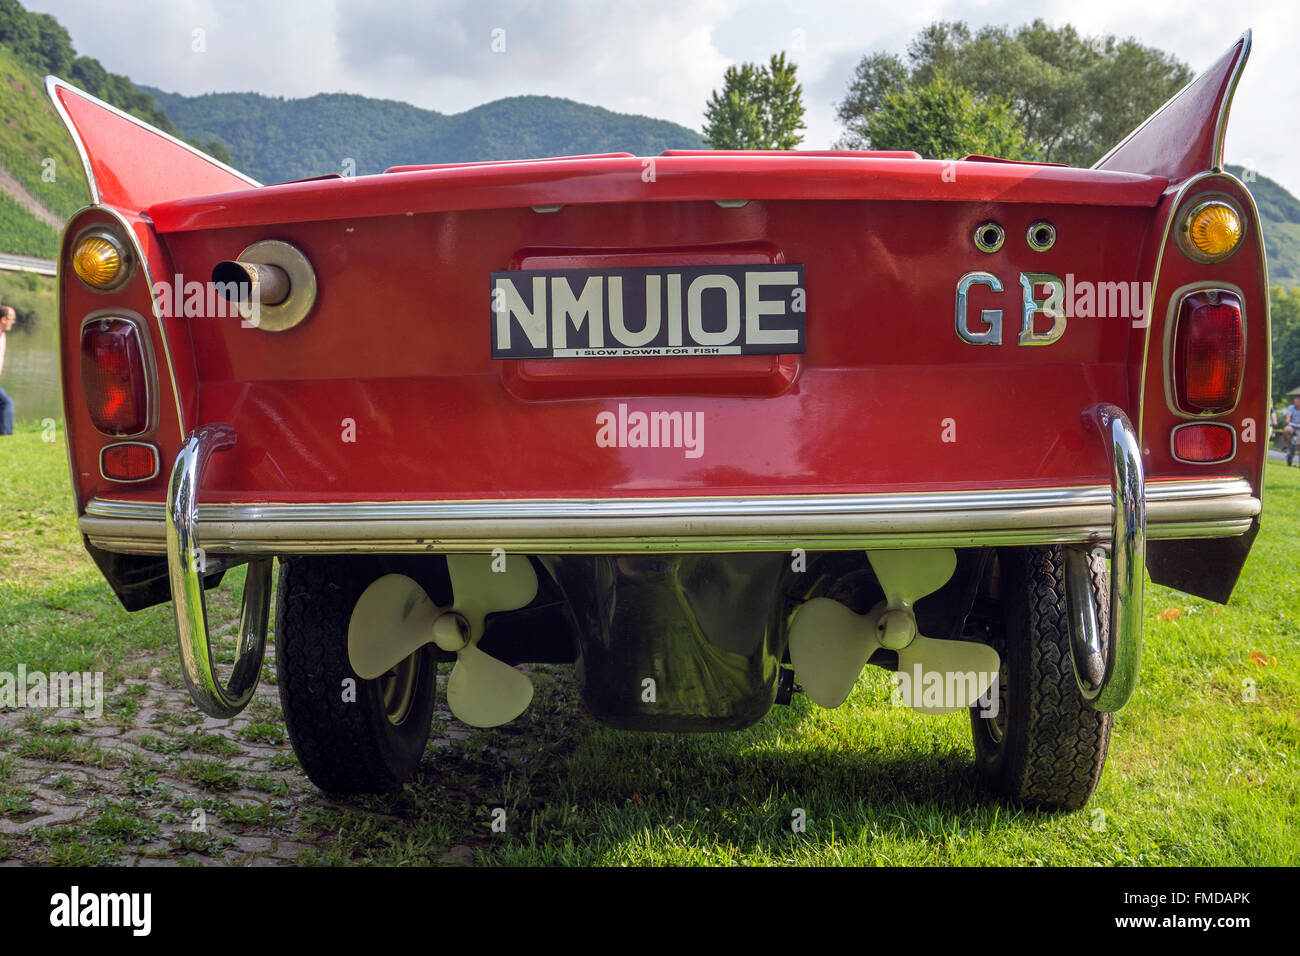 Twin propellers mounted at the rear of a red amphibious car, Amphicar from the 1960s, Moselle, Bruttig-Fankel - Stock Image